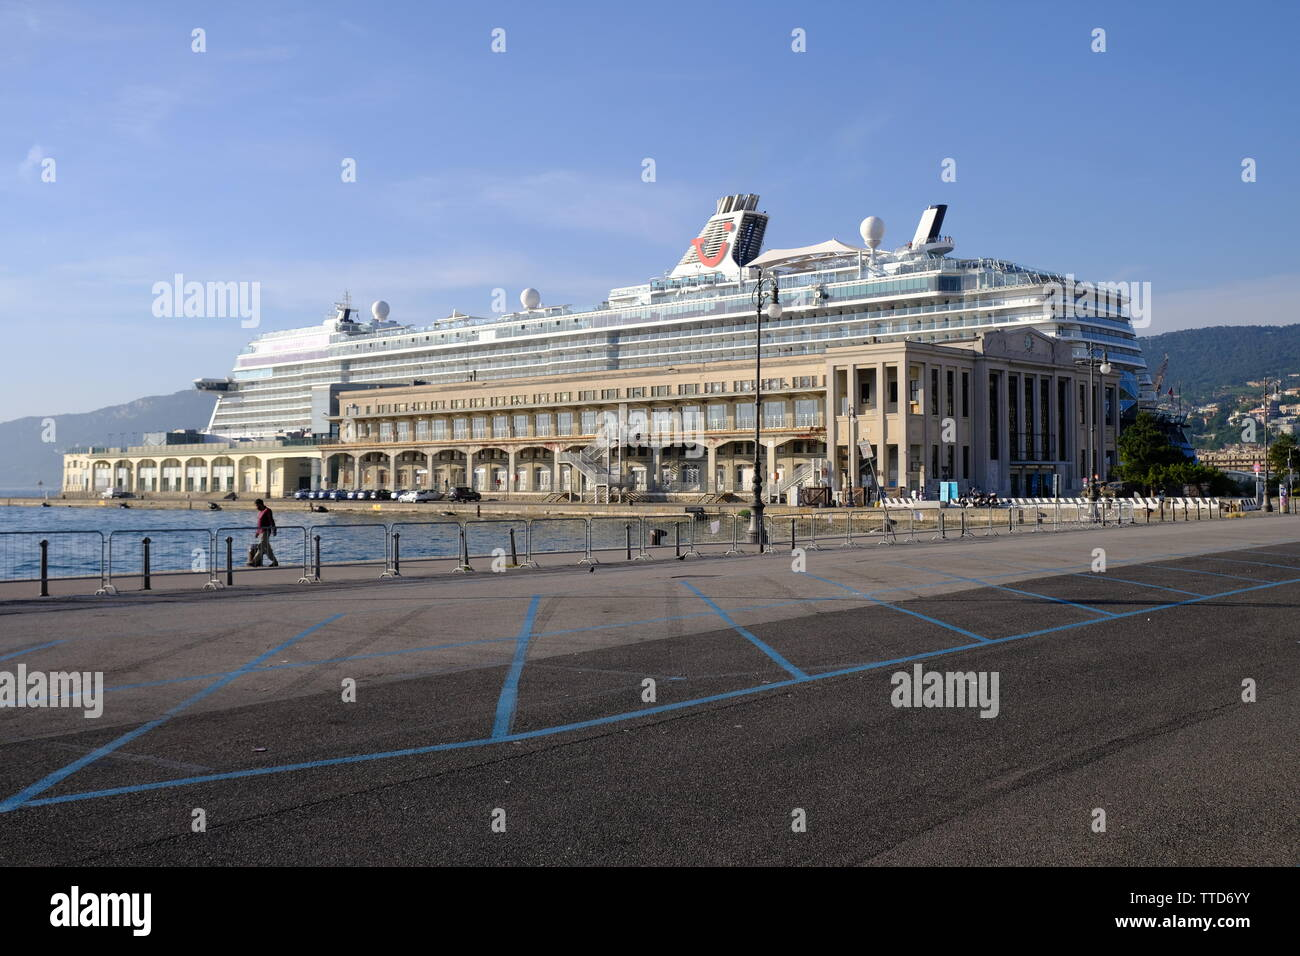 Trieste, Italy, June 16, 2019. Large cruise ship in the city port, redirected due to closure of Venice wharf. - Stock Image